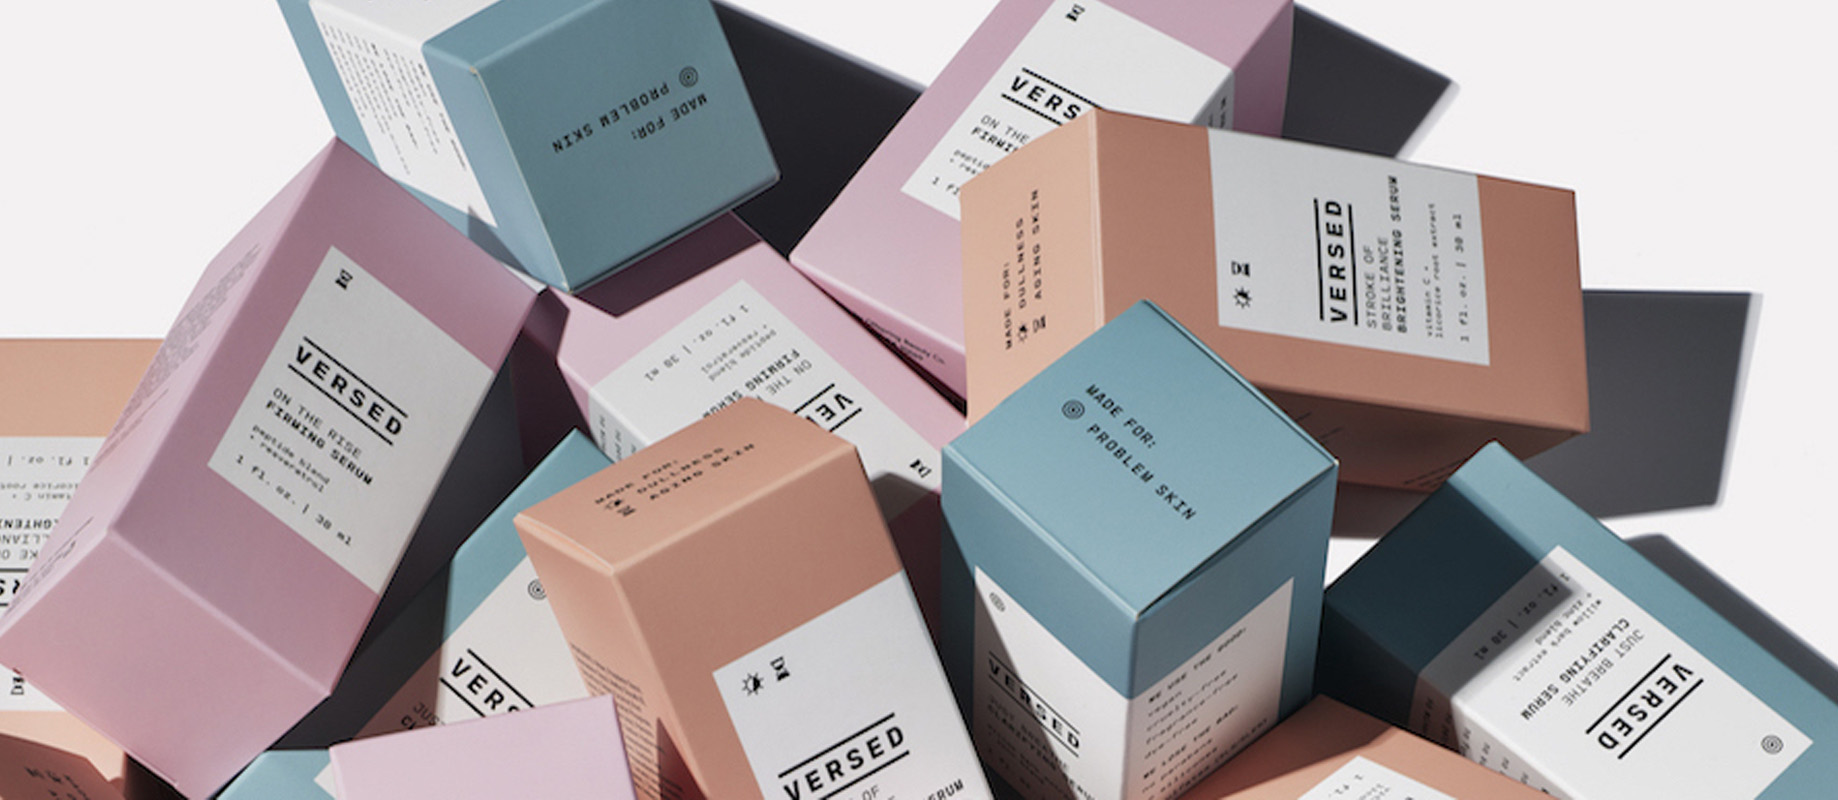 Target debuts a new budget-friendly skincare line called 'Versed' with all prices under $20